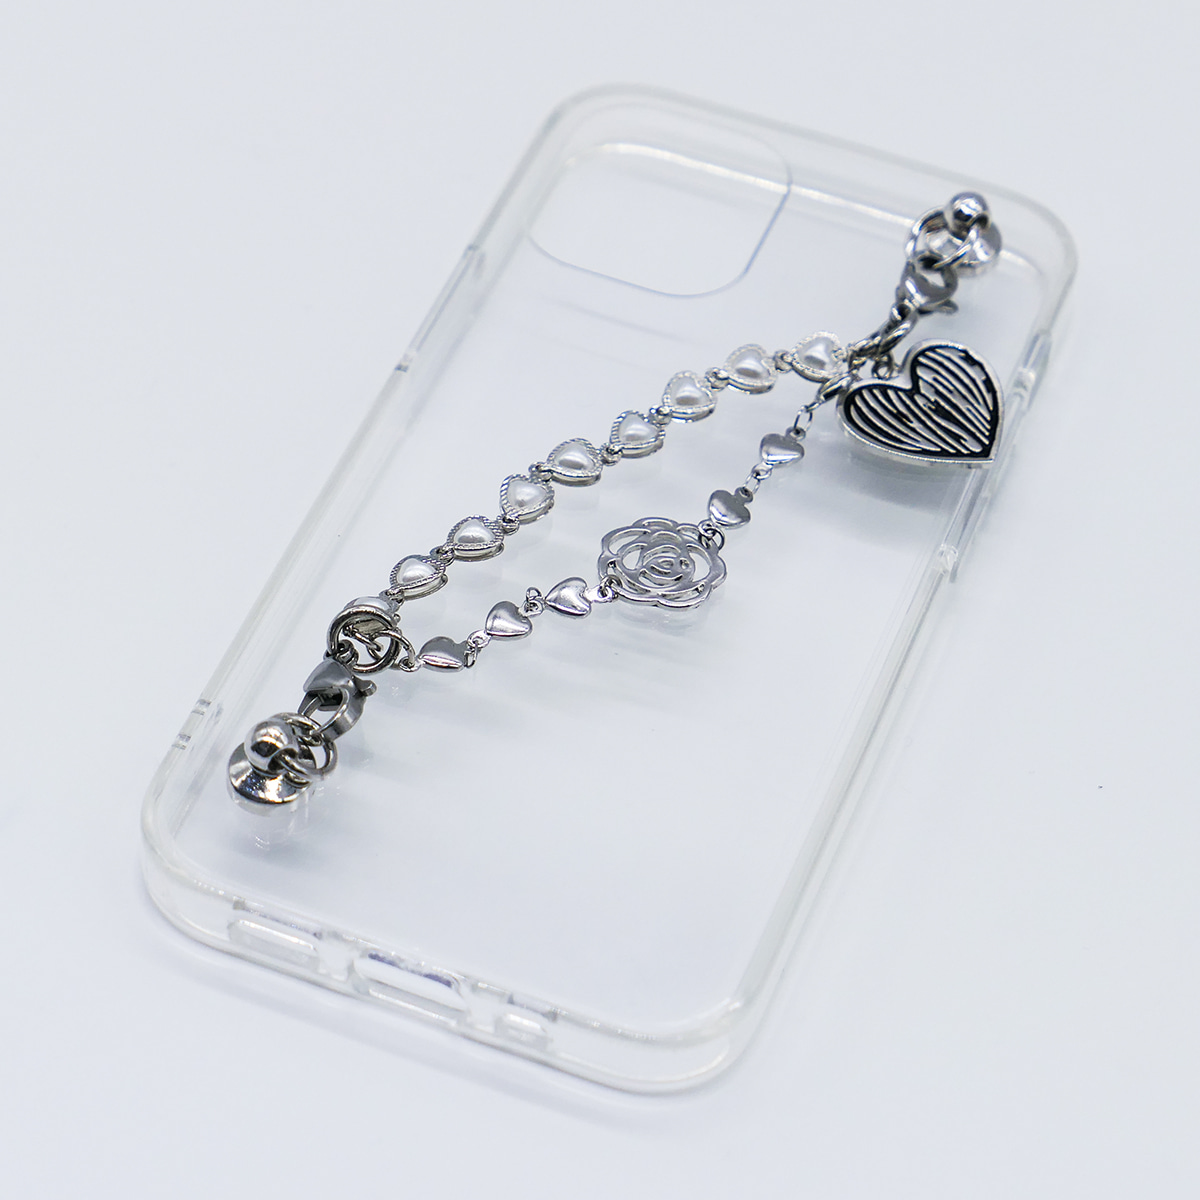 IN ROSE CHAIN CASE(SILVER)